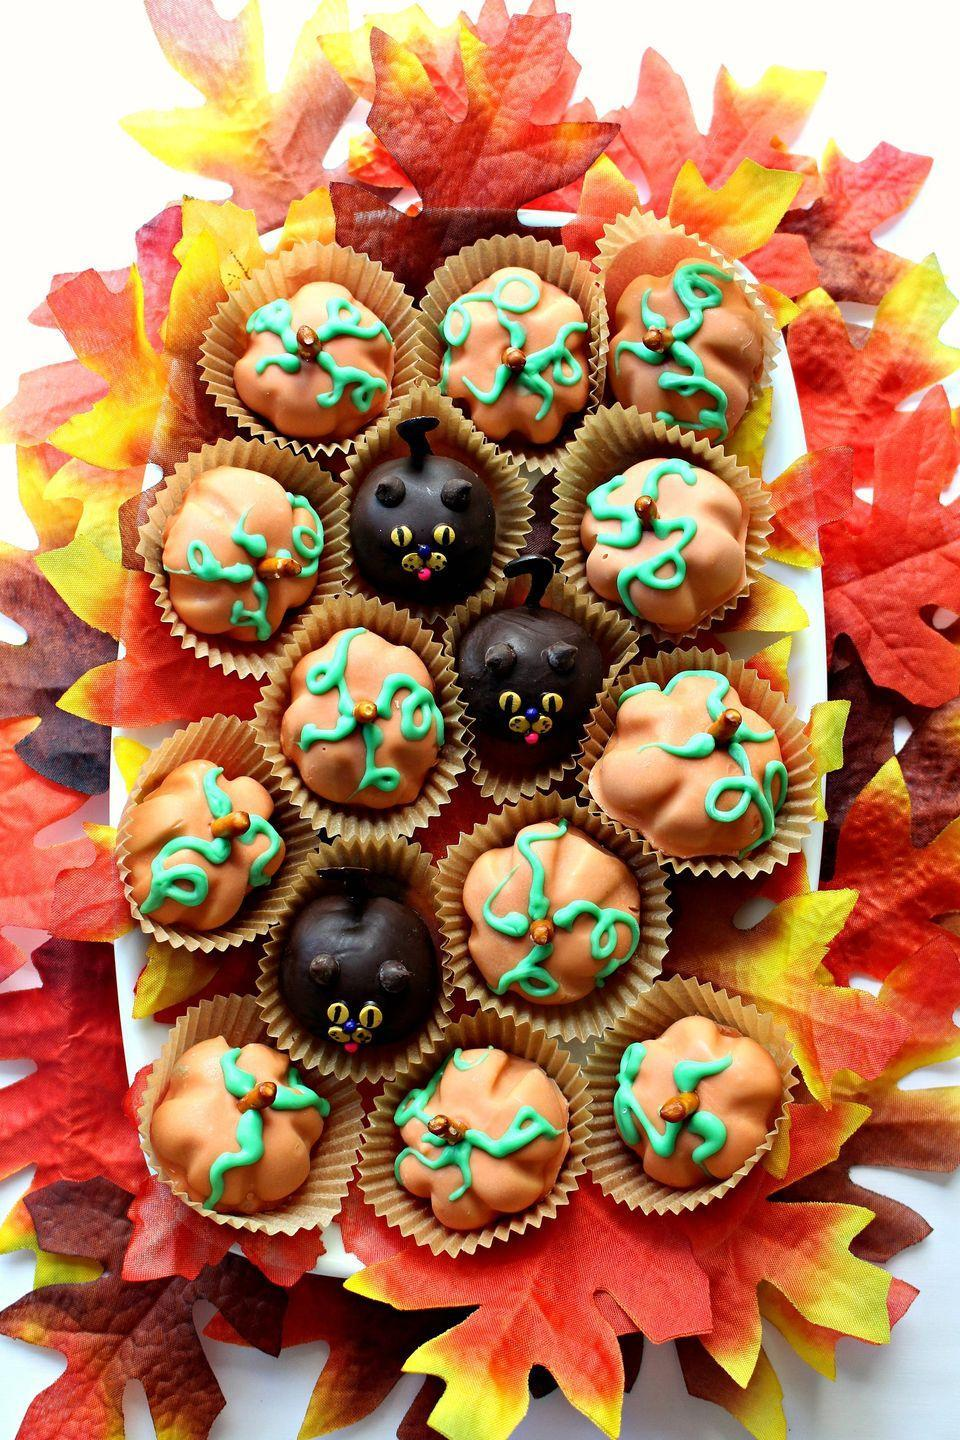 "<p>How adorable are these? Plus, no one can resist peanut butter and chocolate!</p><p><a class=""link rapid-noclick-resp"" href=""https://themondaybox.com/peanut-butter-ball-pumpkins-cats/"" rel=""nofollow noopener"" target=""_blank"" data-ylk=""slk:GET THE RECIPE"">GET THE RECIPE</a></p>"